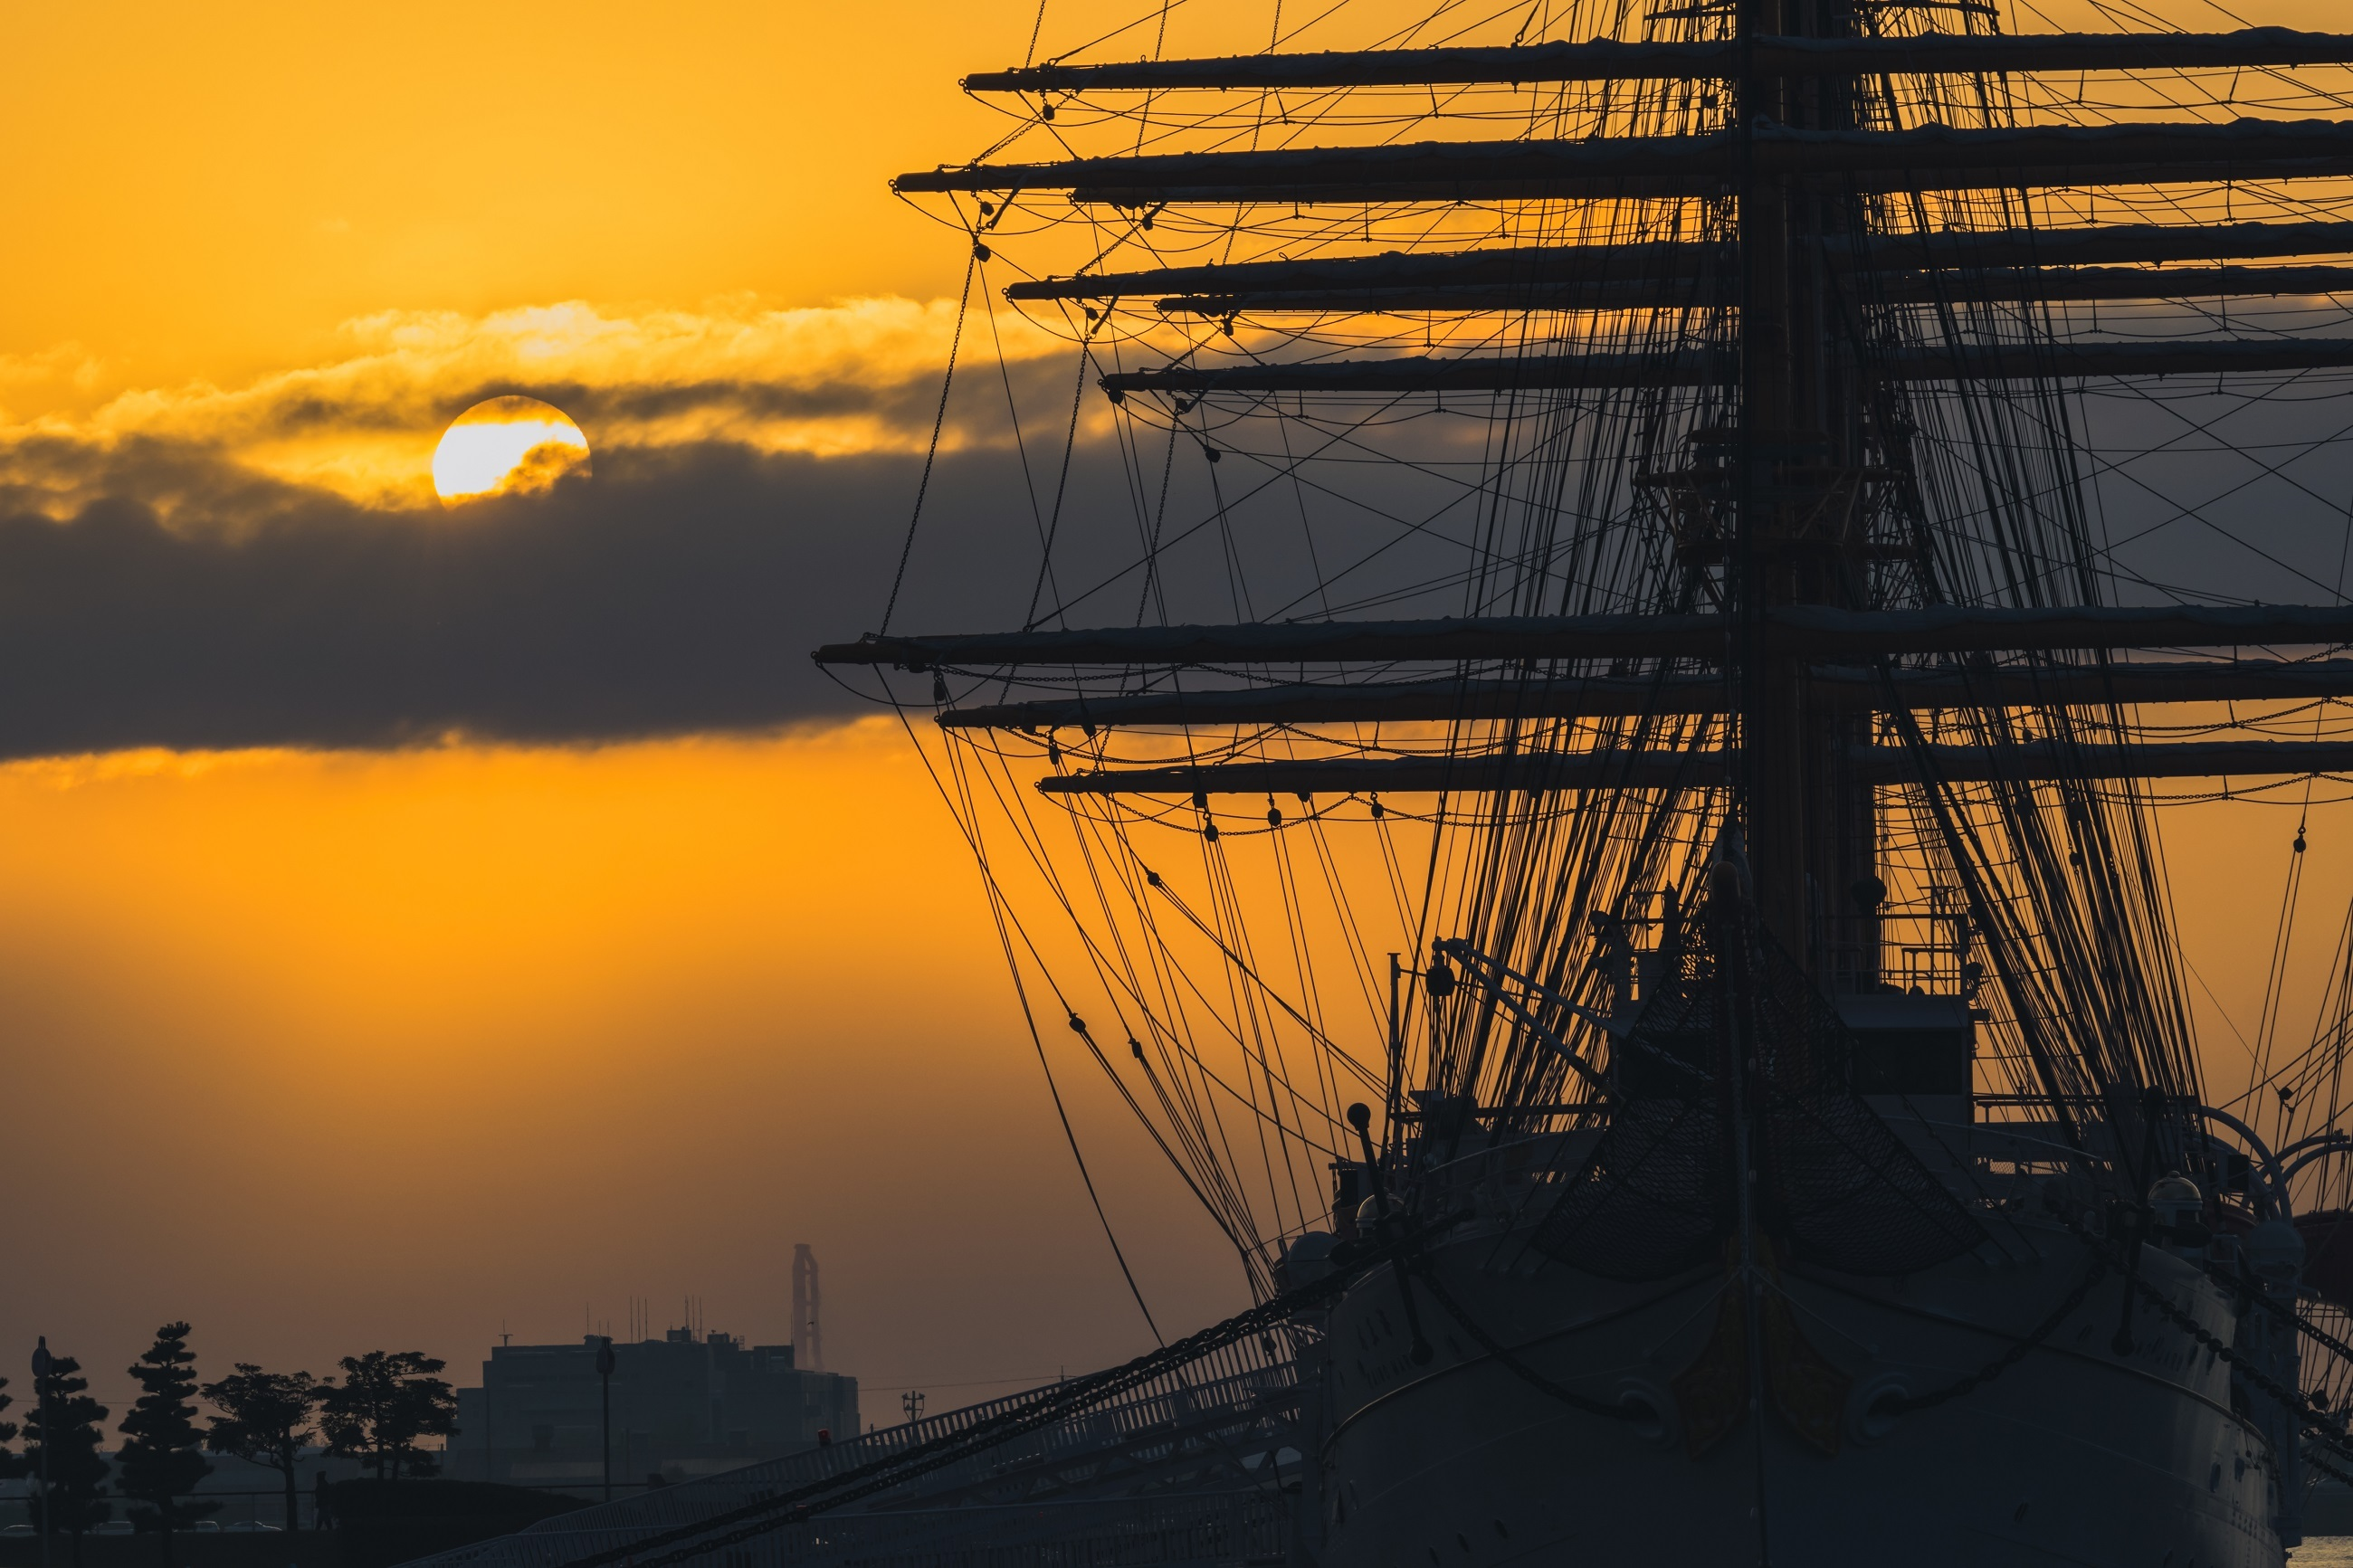 Sun Hiding behind Clouds, Nature, Ship, Sunset, Hide, HQ Photo